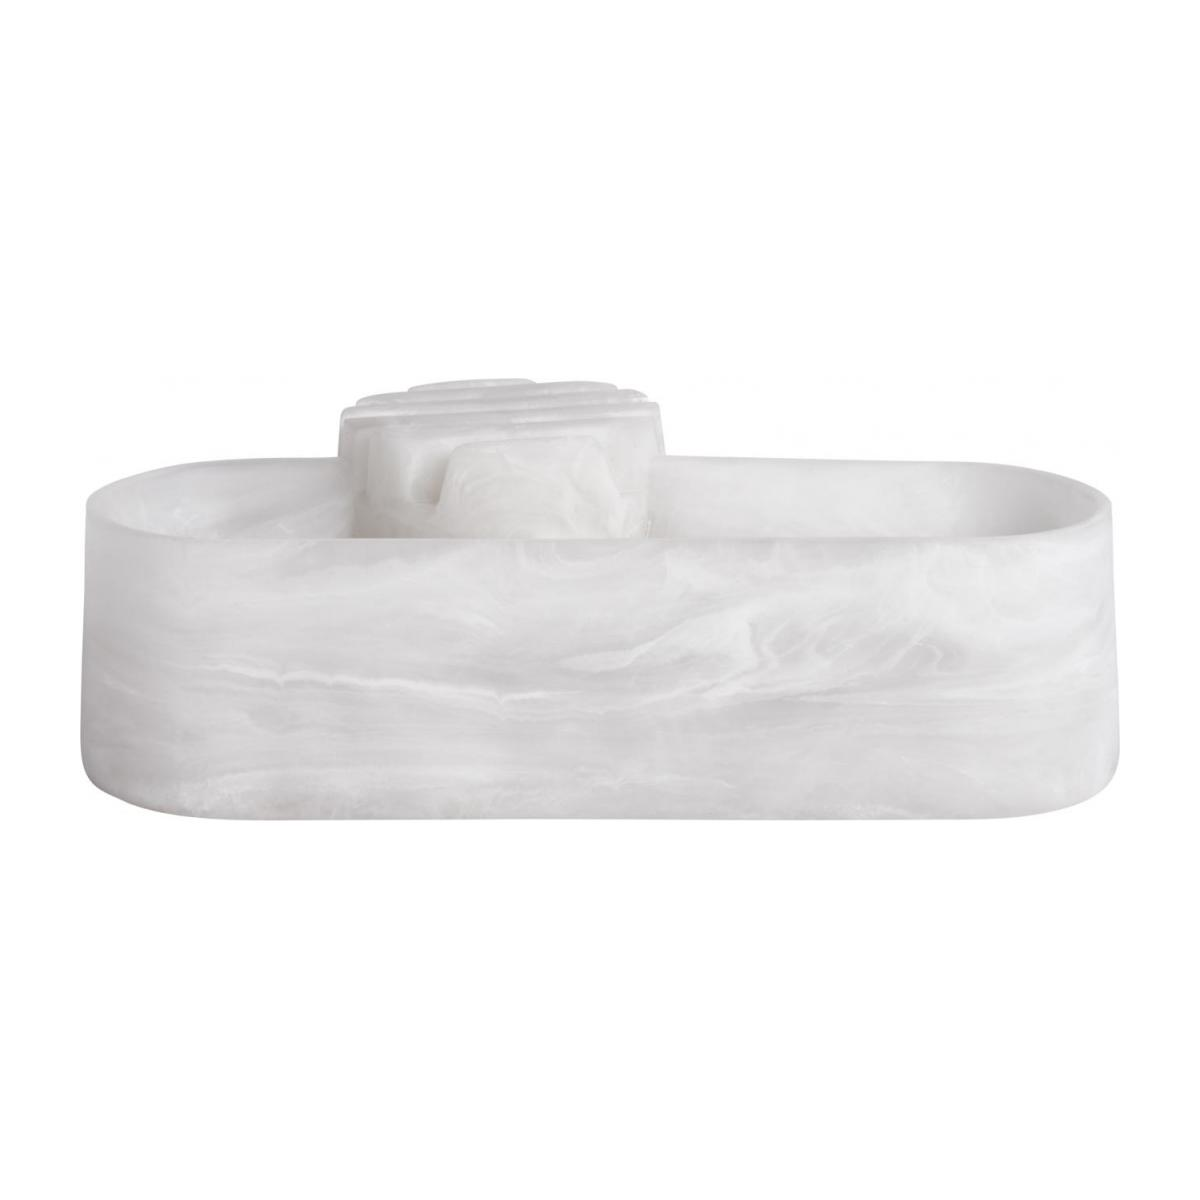 Office trinket bowl made of resin, white - Design by Ferréol Babin n°2